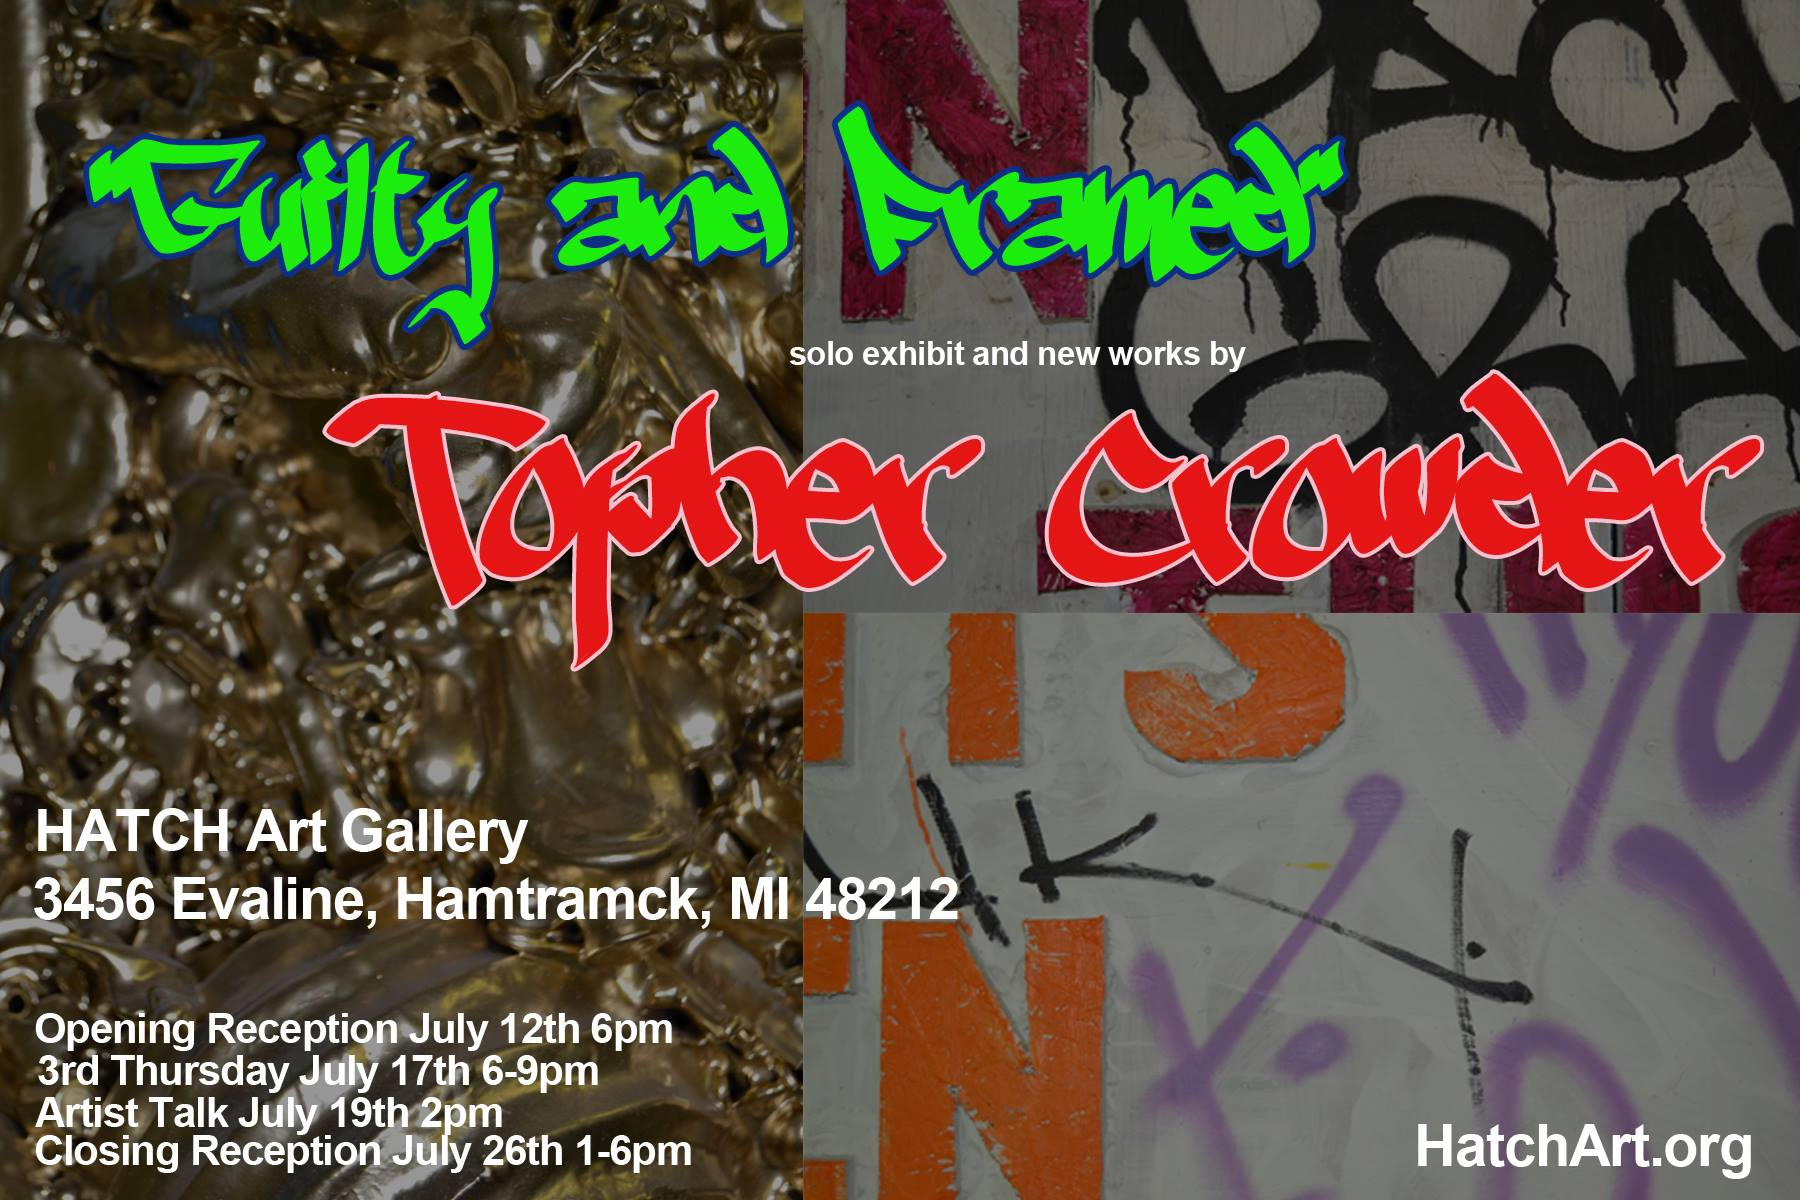 Guilty and Framed: Solo exhibit and new works by Topher Crowder, July 12-26